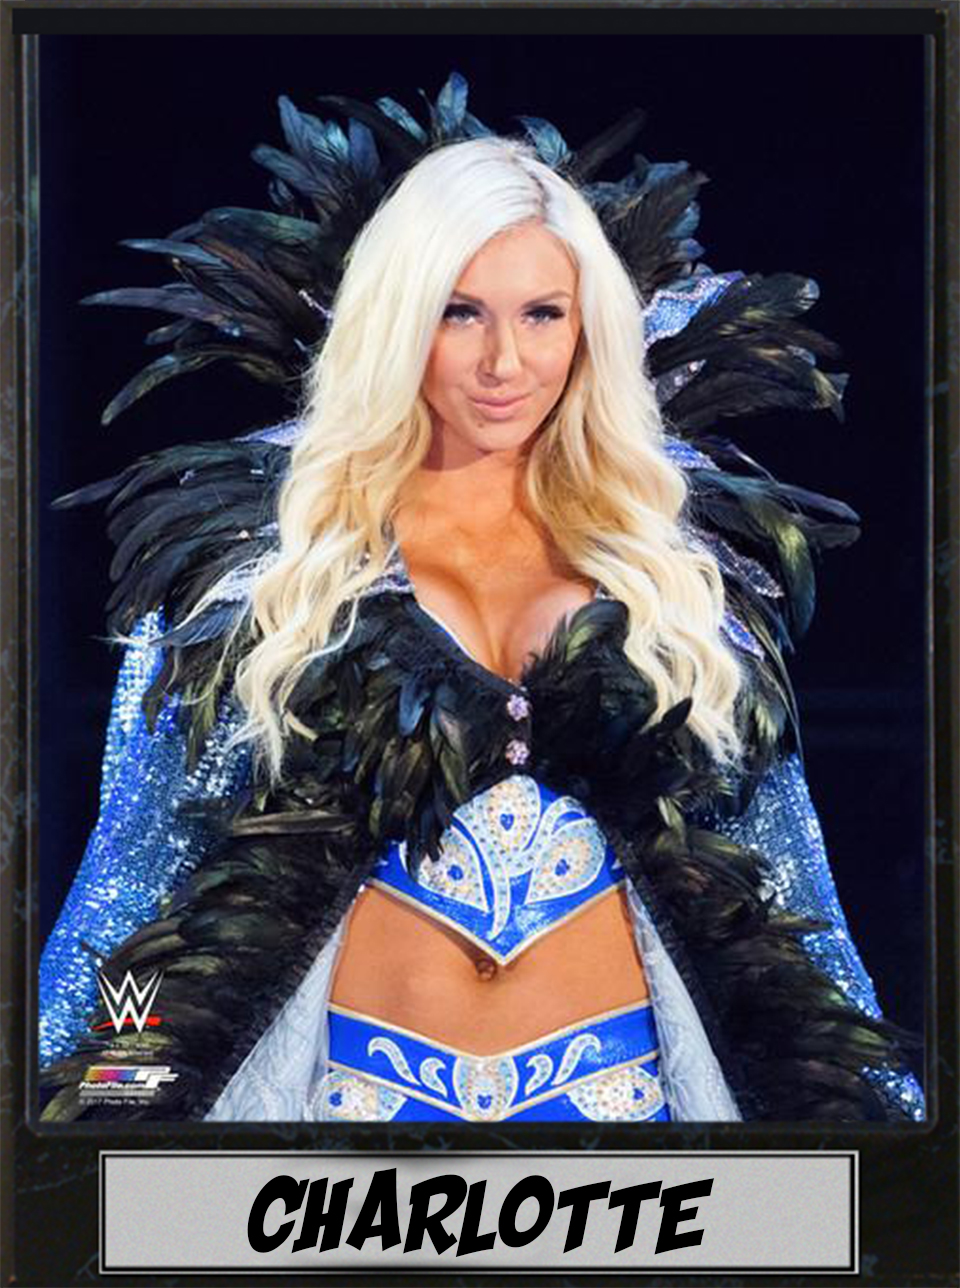 9x12 Photo Plaque Charlotte Flair by Encore Select